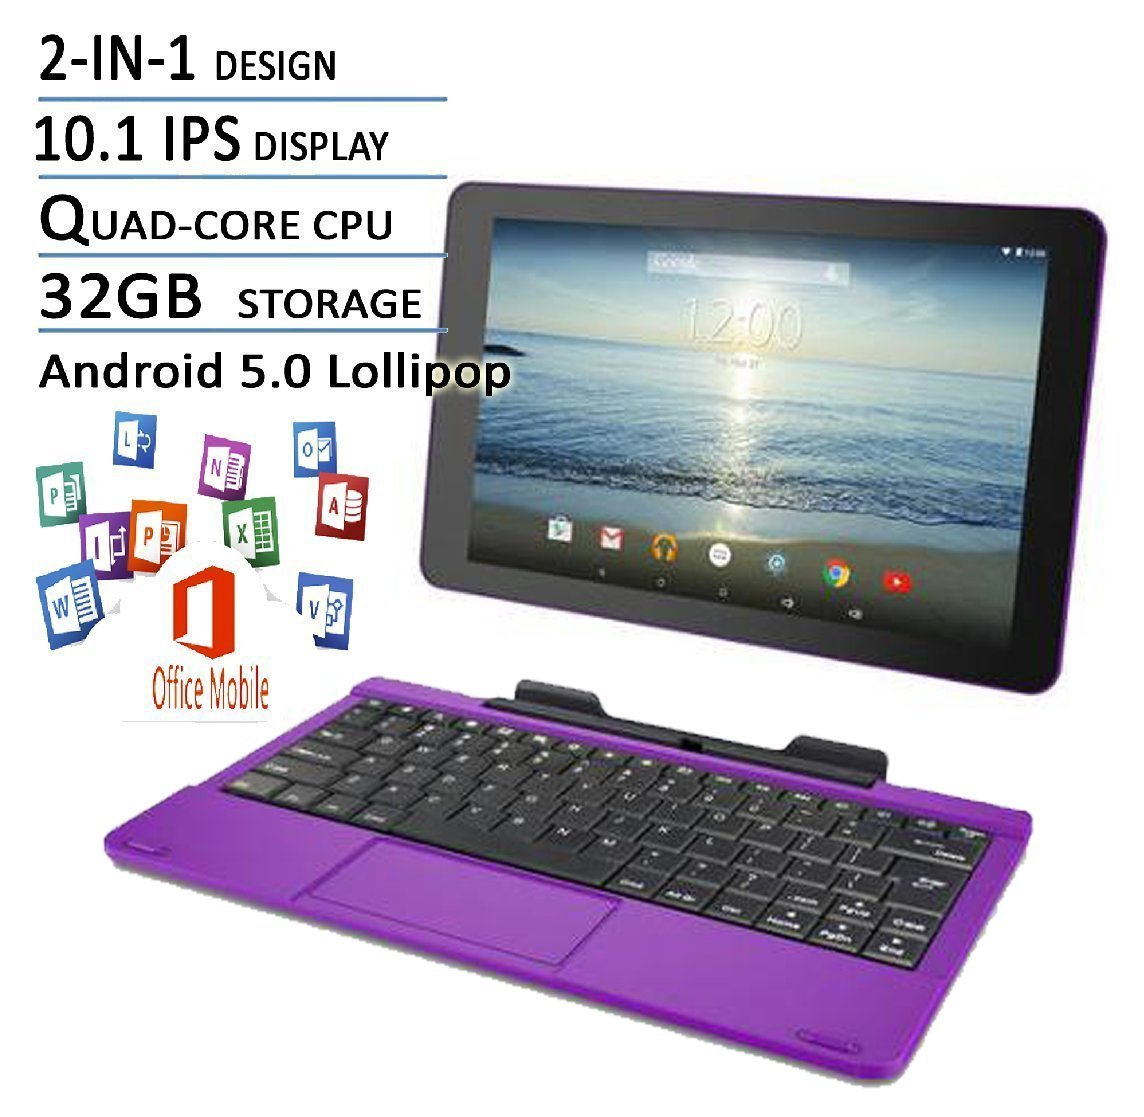 RCA Viking Pro Purple Edition 10 1 Touchscreen 2 In 1 Tablet Laptop,  Detachable Keyboard, Free Office Moblie APP, Quad-Core Processor,32G  storage, IPS